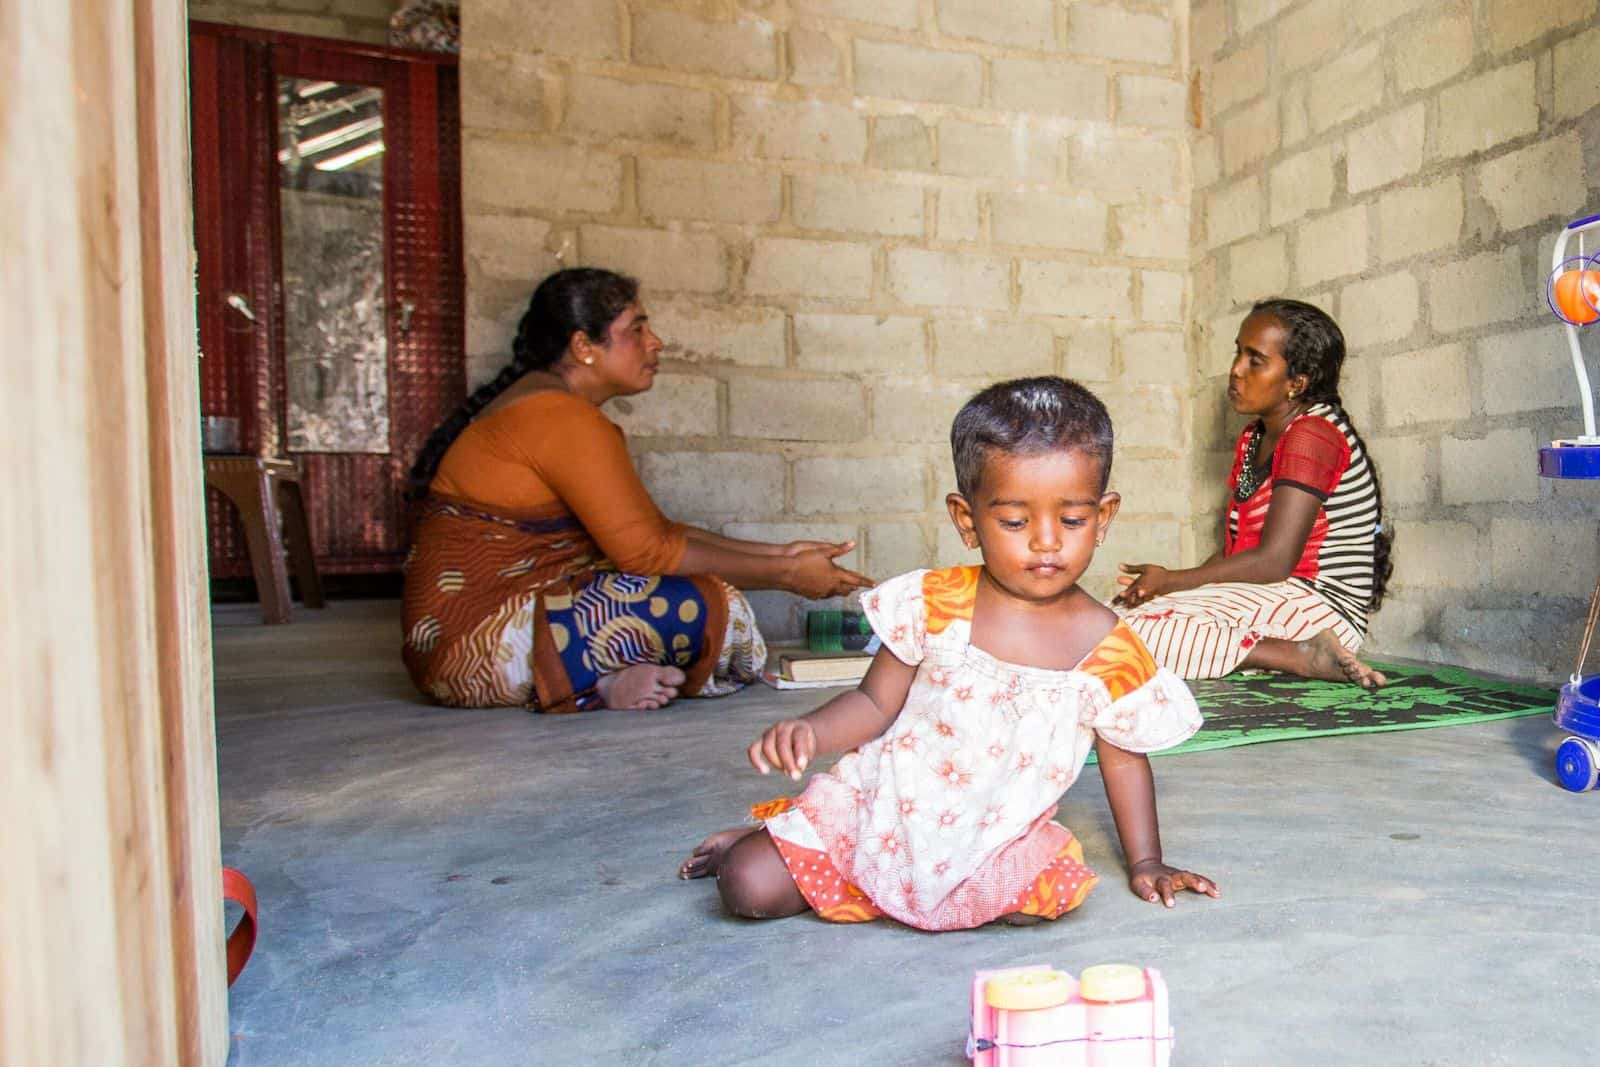 Two women sit on the floor talking with a toddler sitting on the ground.